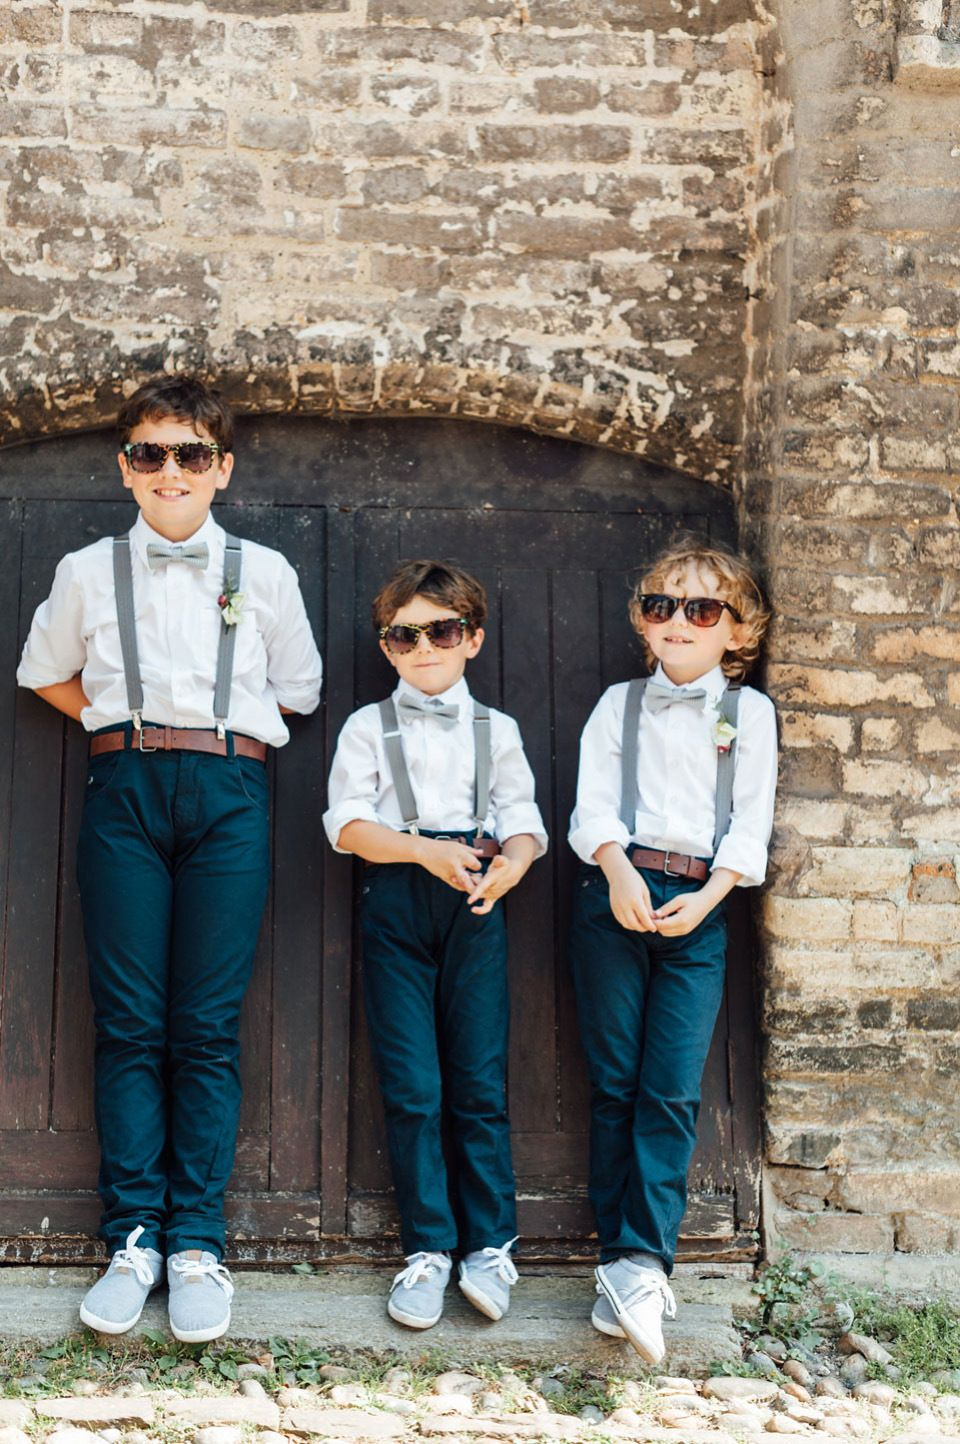 Boys wear jeans, braces and bow ties | Photography by http://www.annkathrinkoch.com/